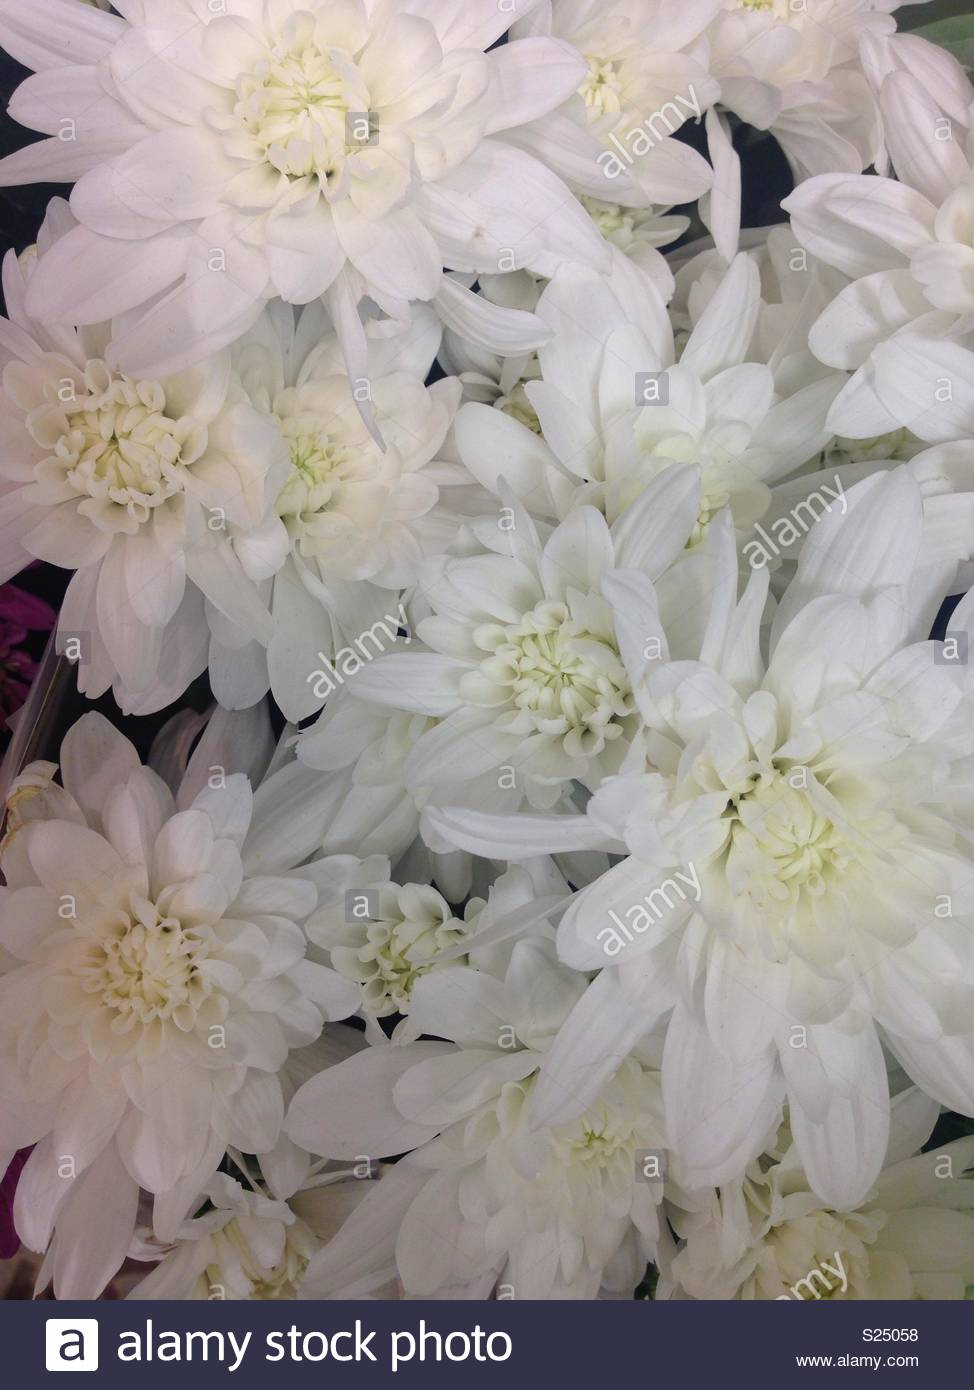 Lovely Vibrant Bunch Of White Flowers With A Pale Yellow Centre